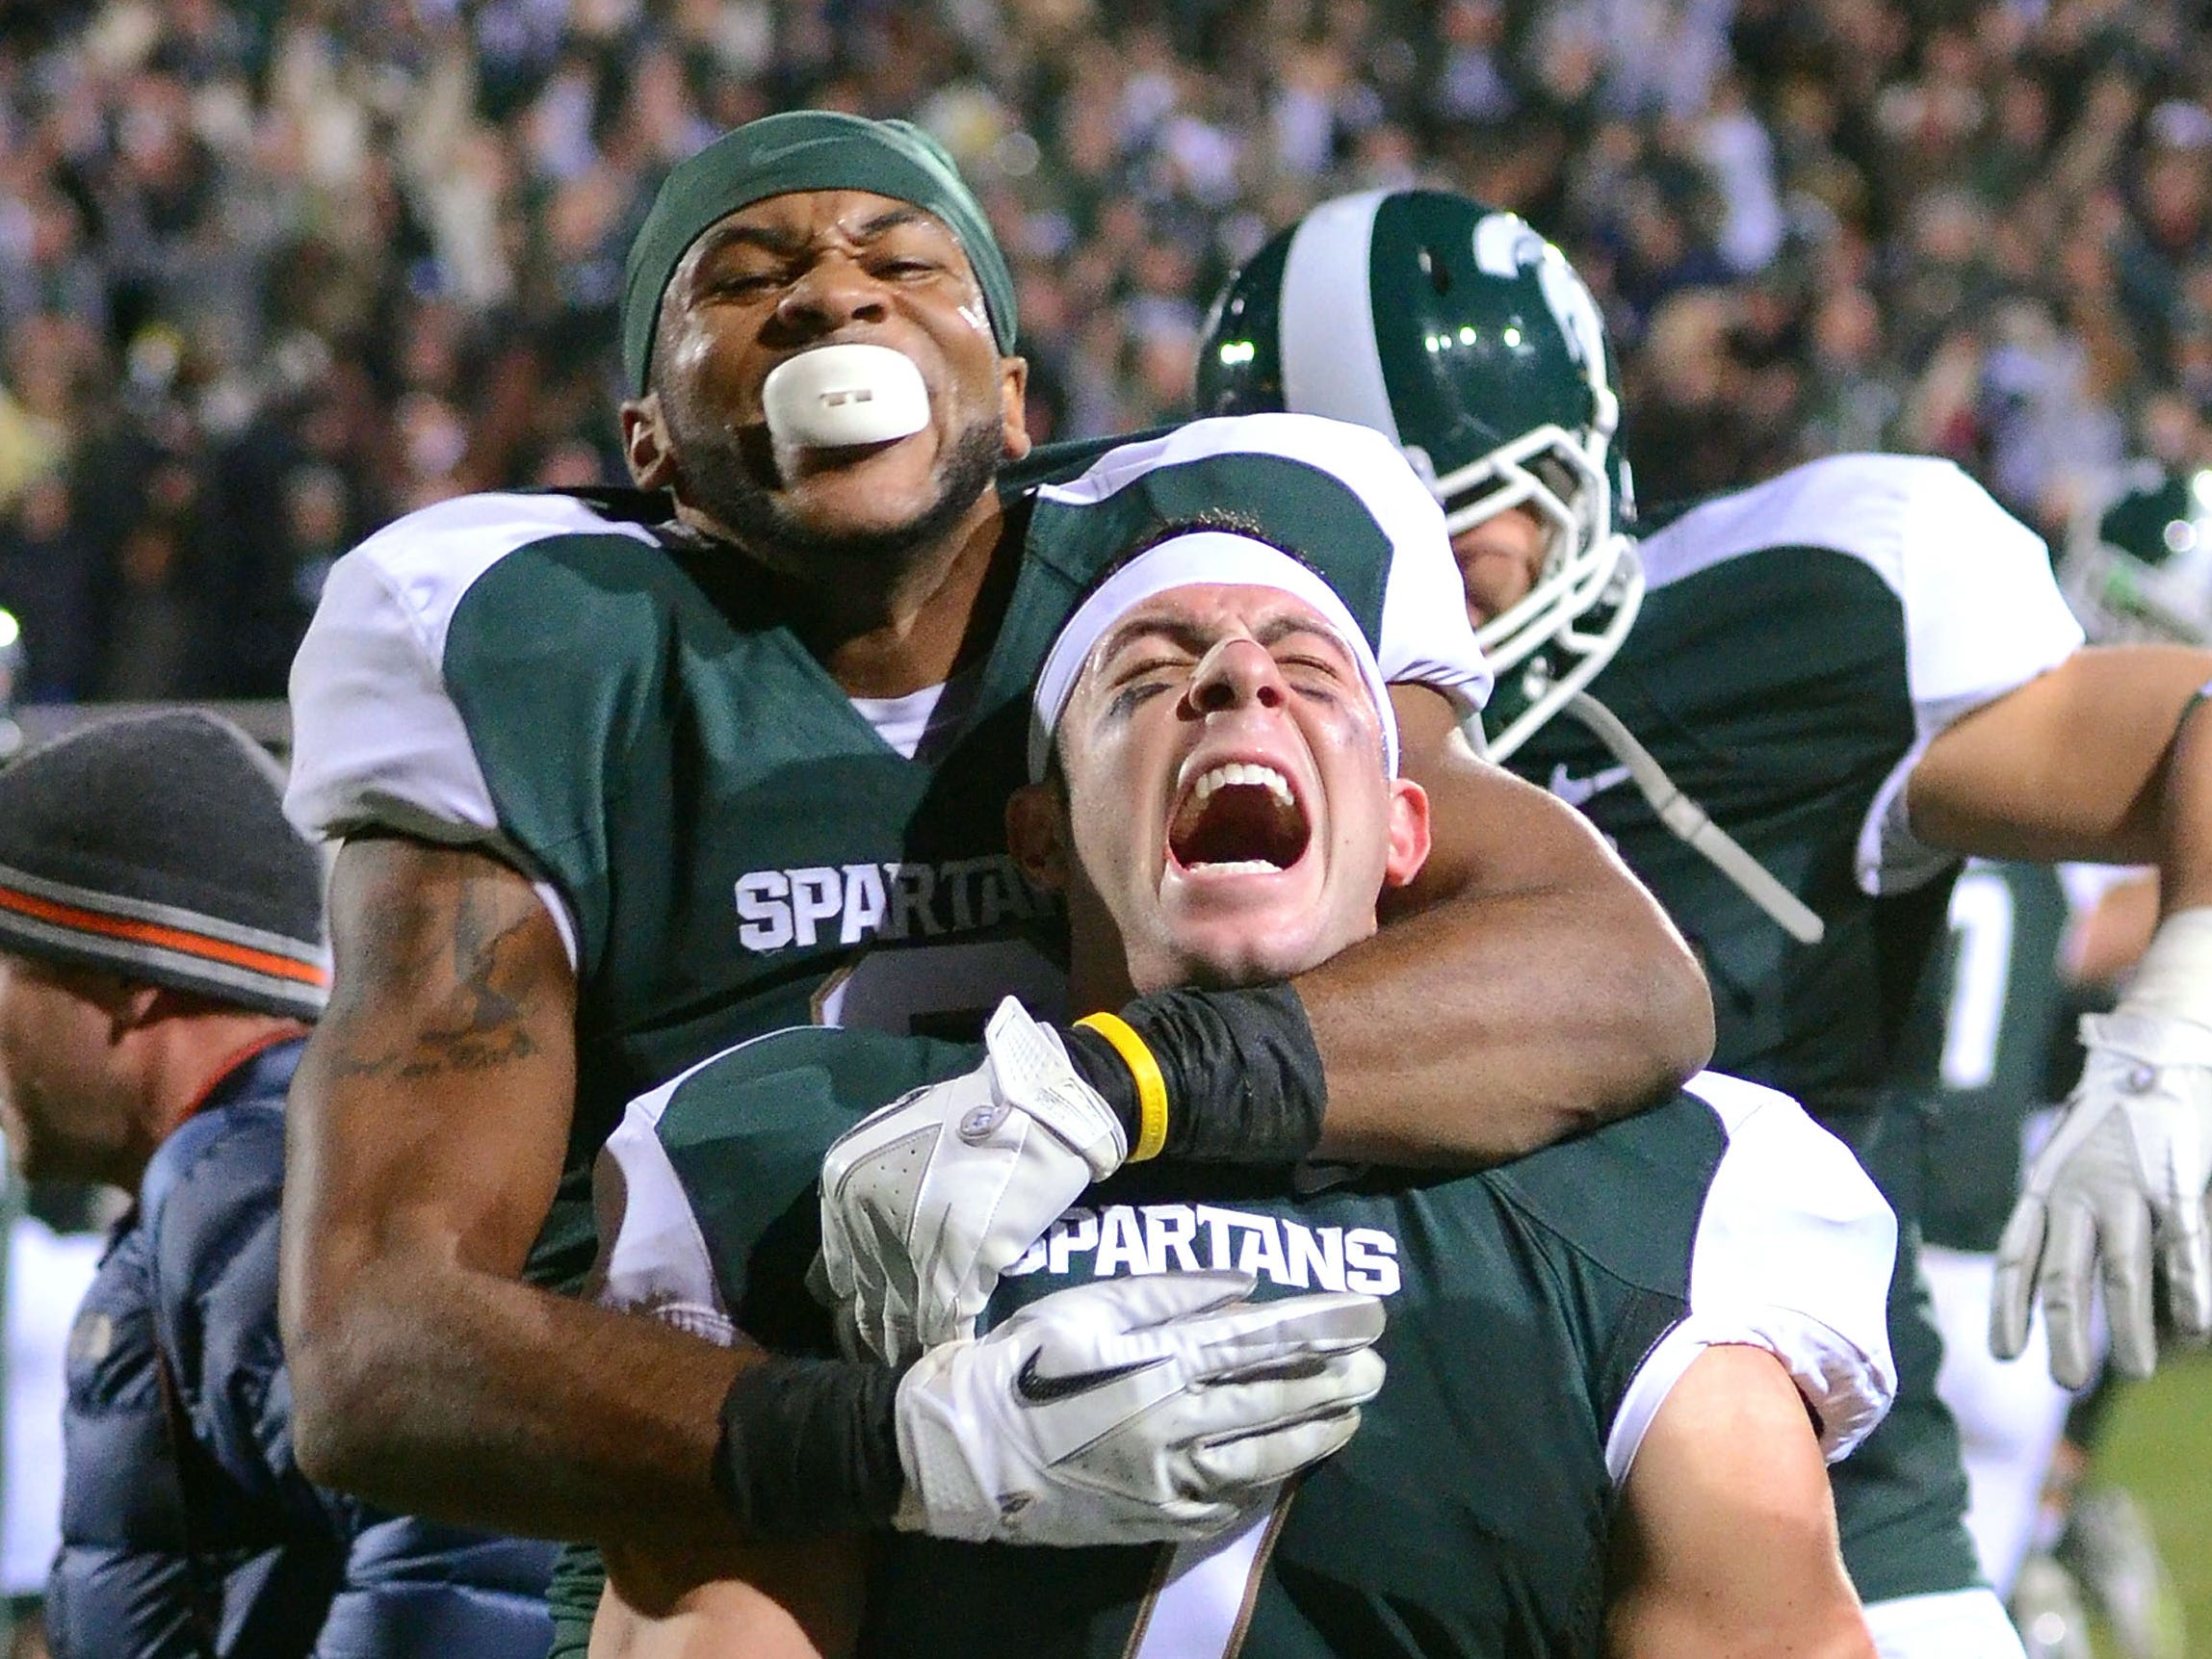 Oct. 22, 2011: No. 15 Michigan State 37, No. 4 Wisconsin 31: B.J. Cunningham and Keith Nichol (7) celebrate.